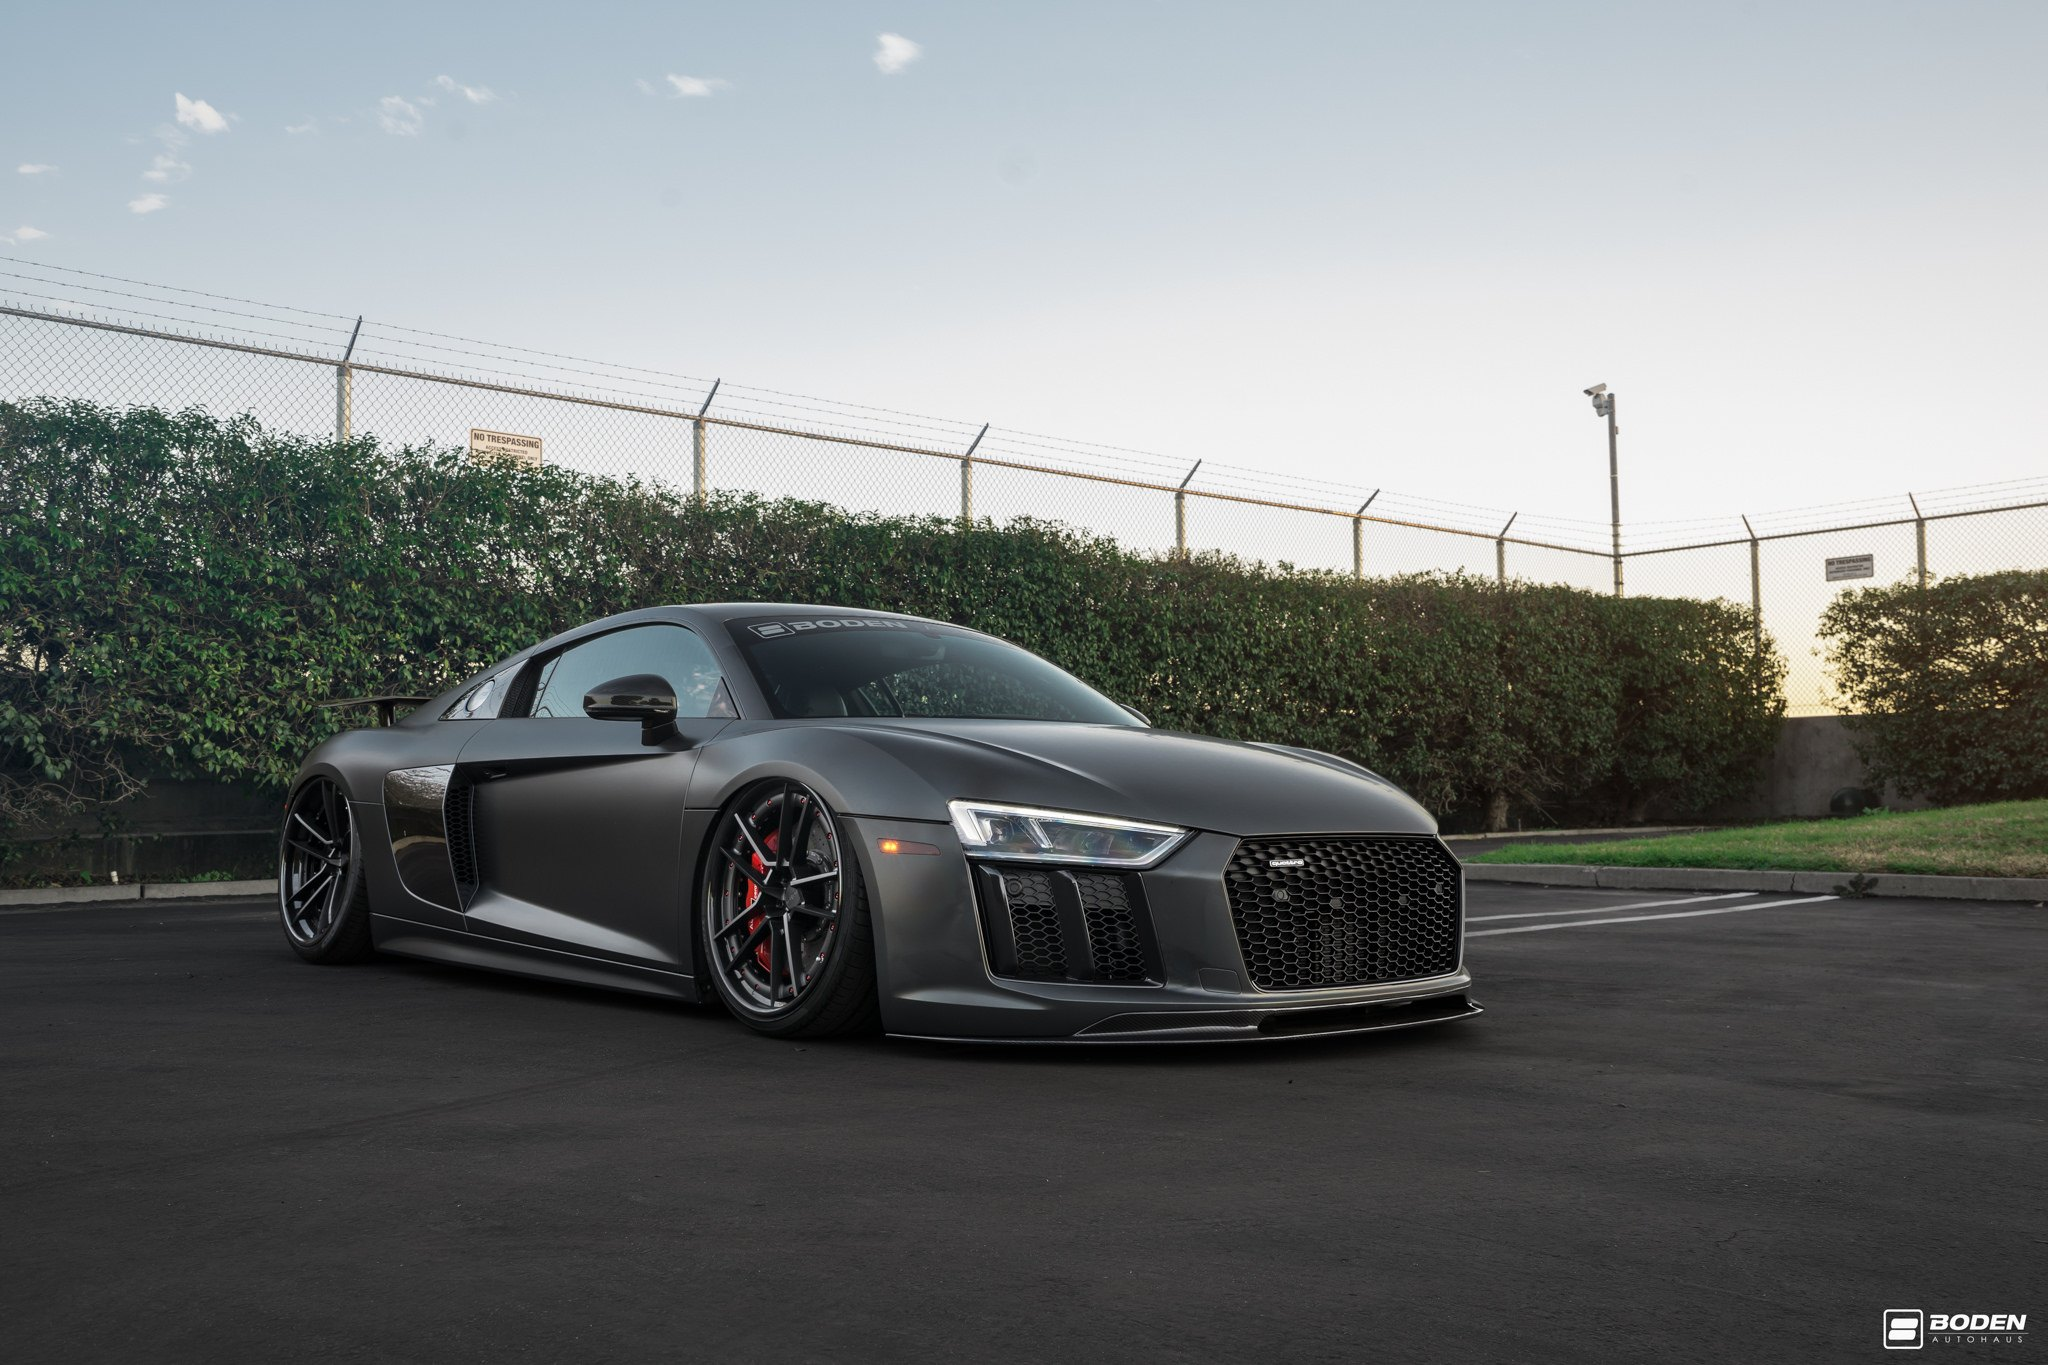 Matte Black Audi R8 Gets A Touch Of Style With Red Elements Carid Com Gallery